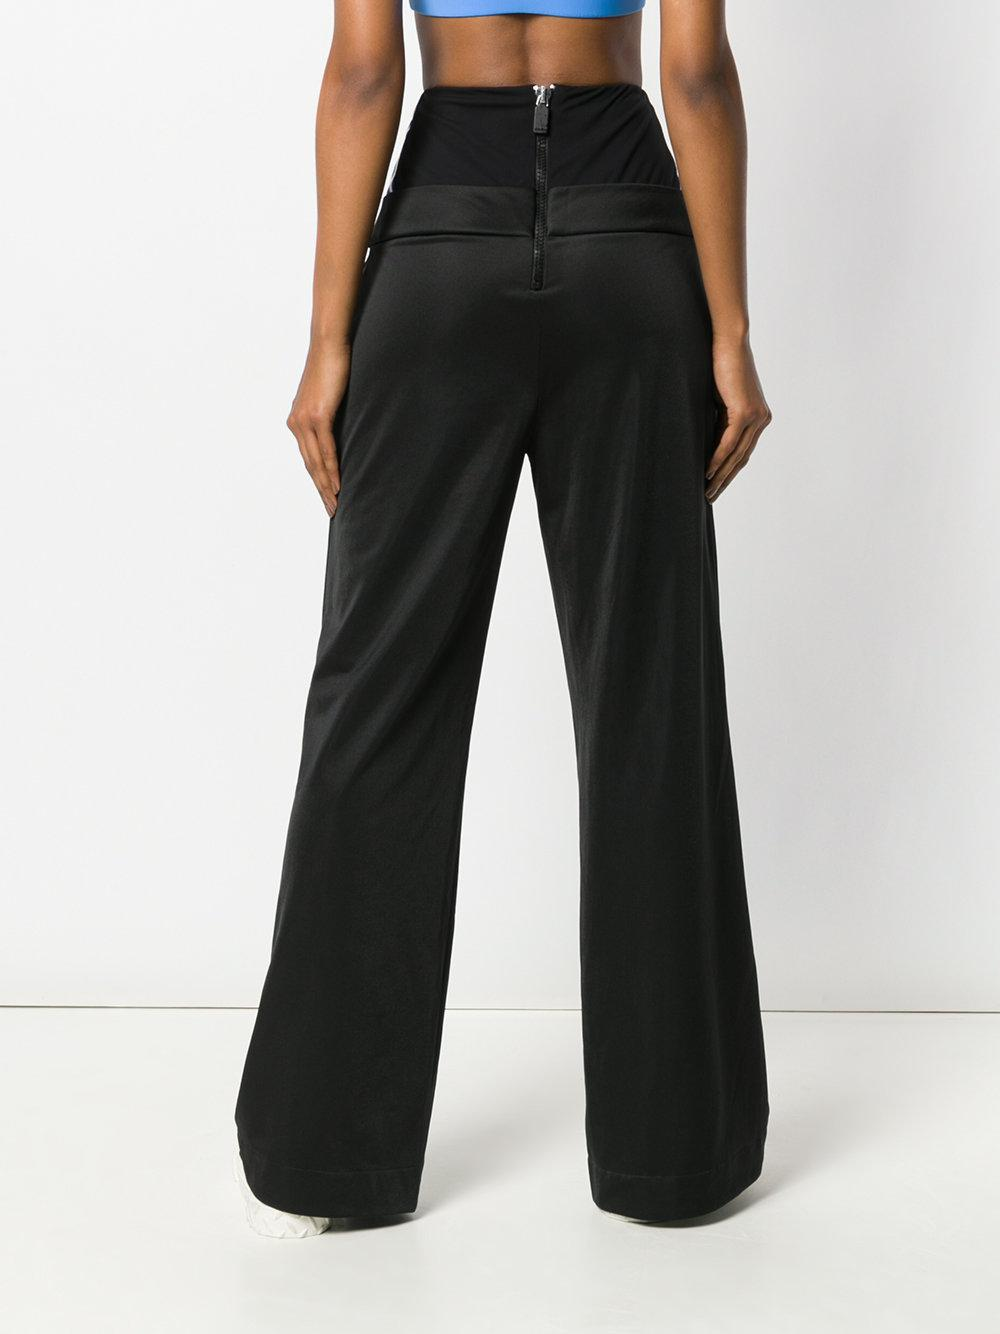 Discount Perfect Shop Offer Sale Online button detail striped trousers - Black No Ka'Oi Pay With Visa Online Discount Order Collections o6m70